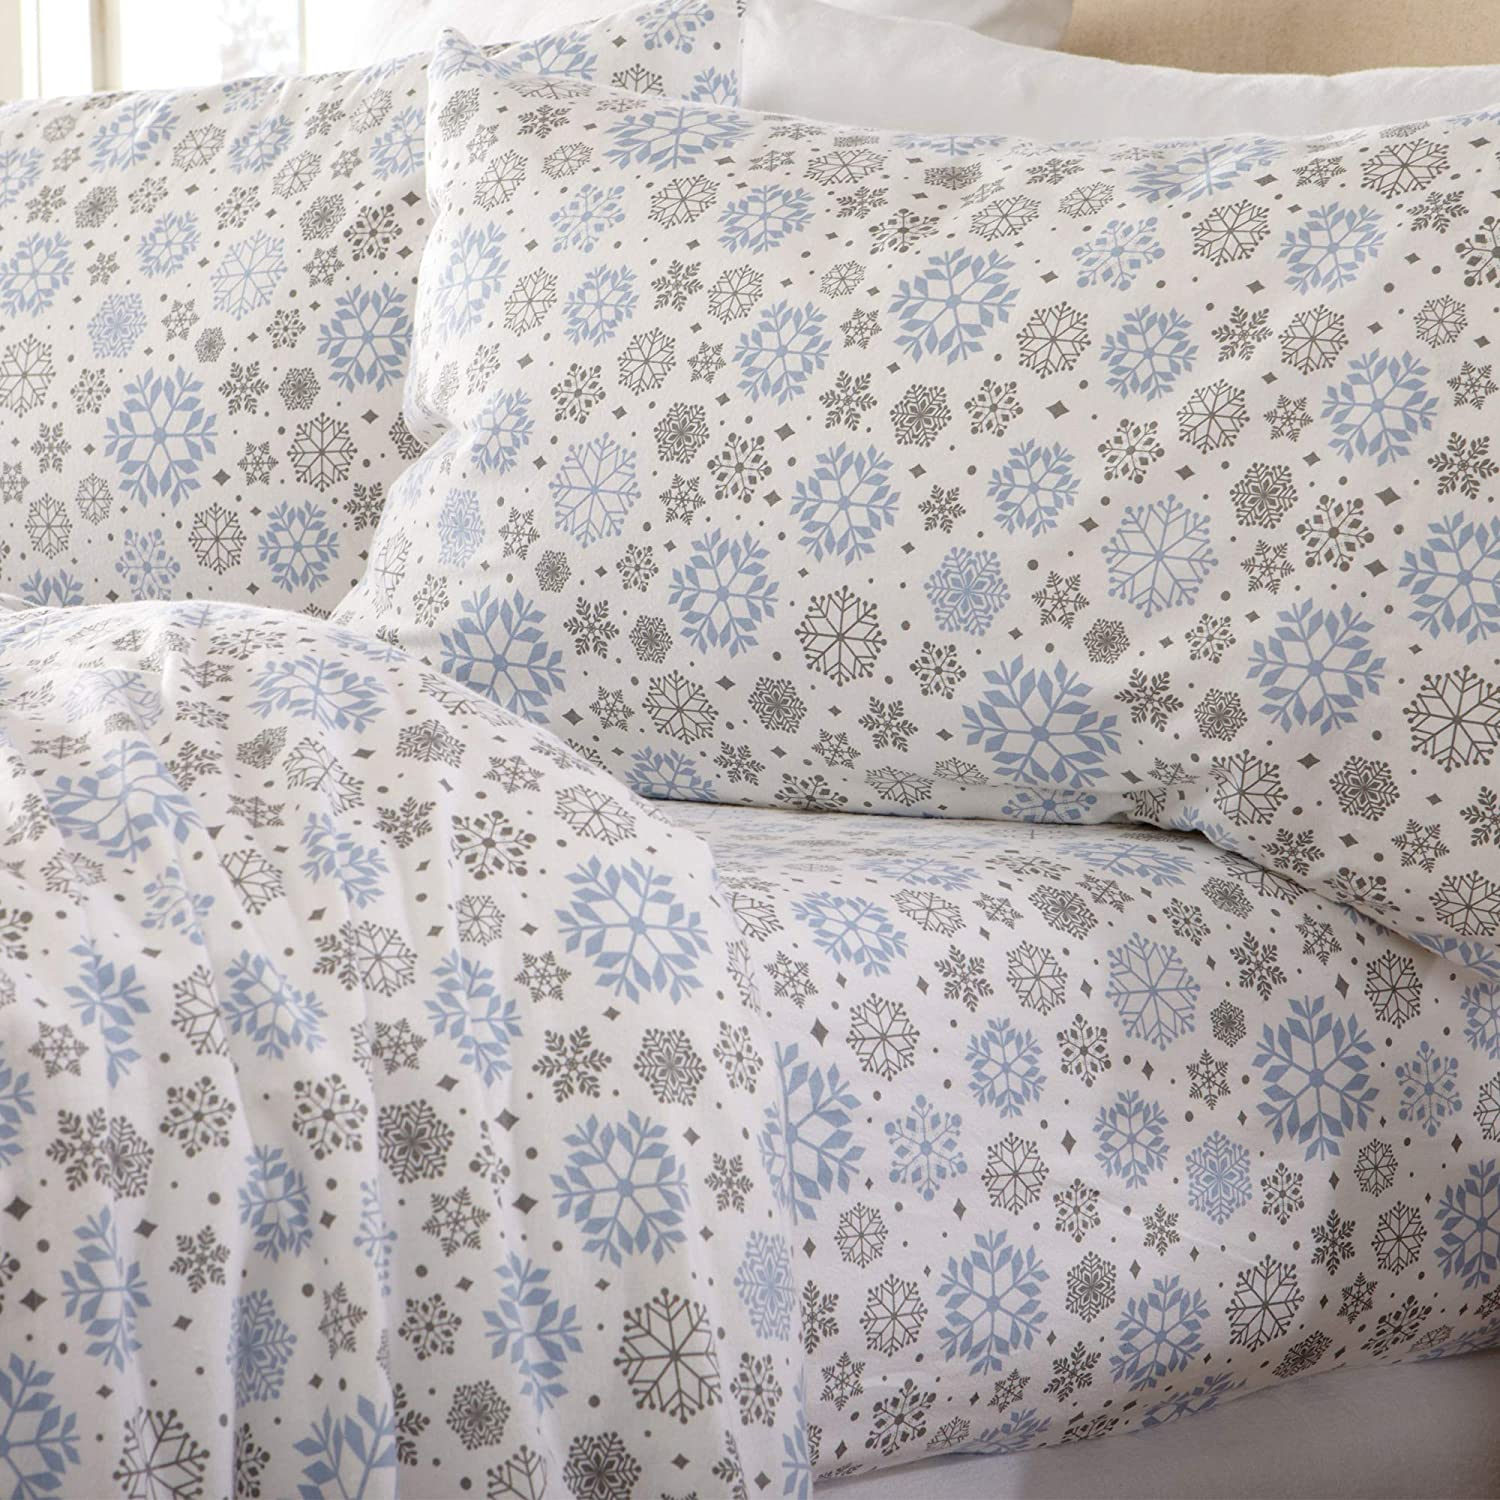 Home Fashion Designs Flannel Sheets King Winter Bed Sheets Flannel Sheet Set Snowflakes Flannel Sheets 100% Turkish Cotton Flannel Sheet Set. Stratton Collection (King, Snowflakes)